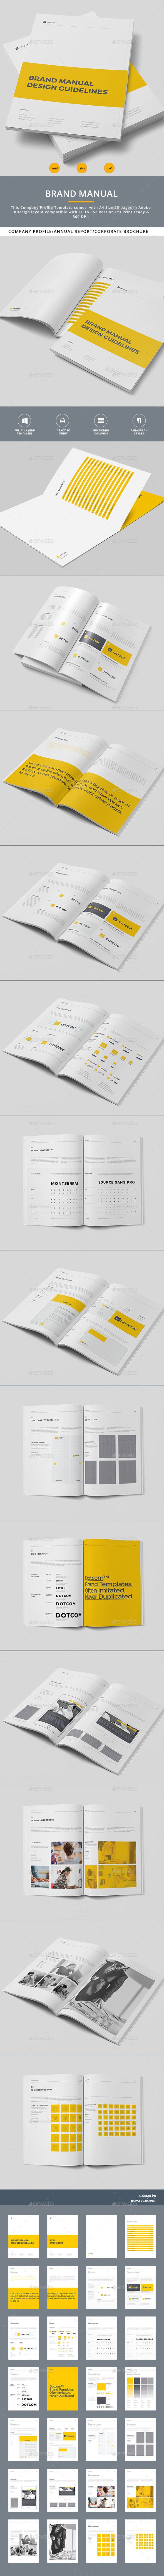 Business Manual Template. Bank Reconciliation Statement Format Excel ...